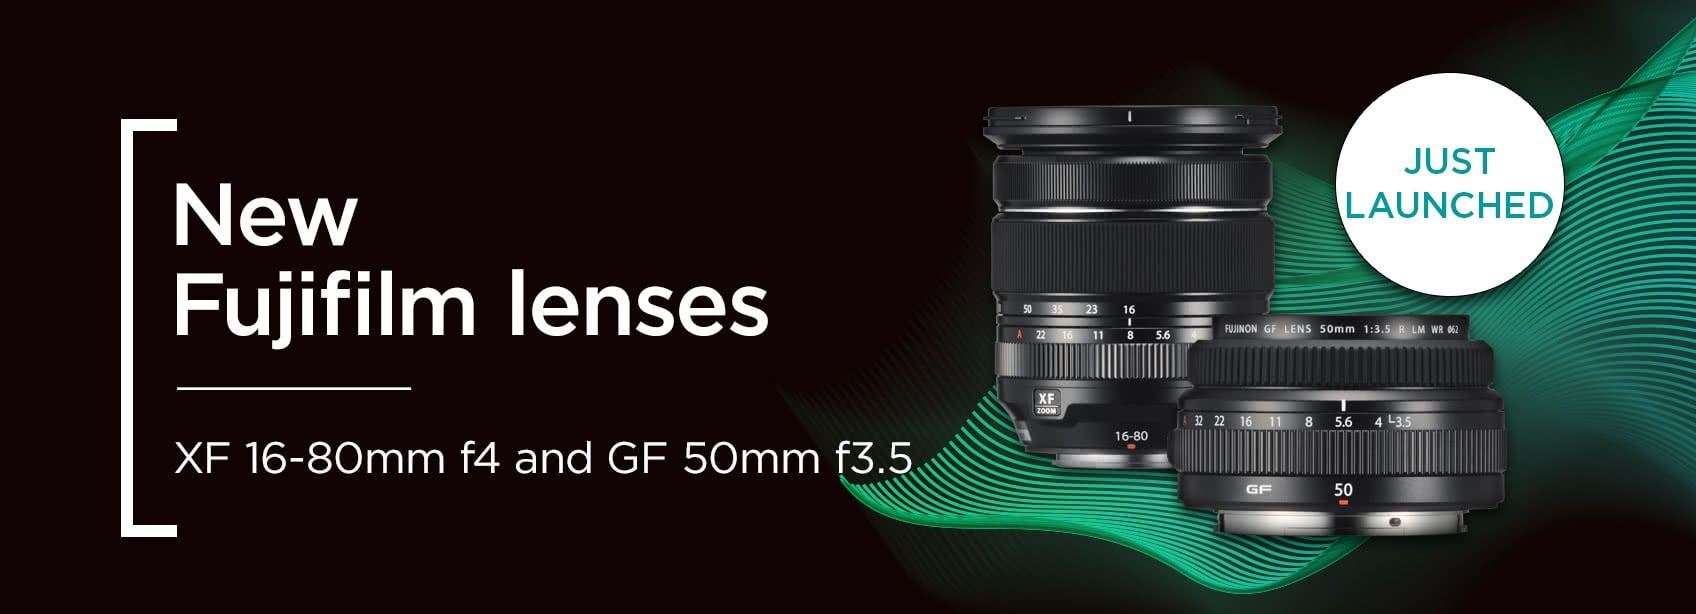 New lenses from Fujifilm